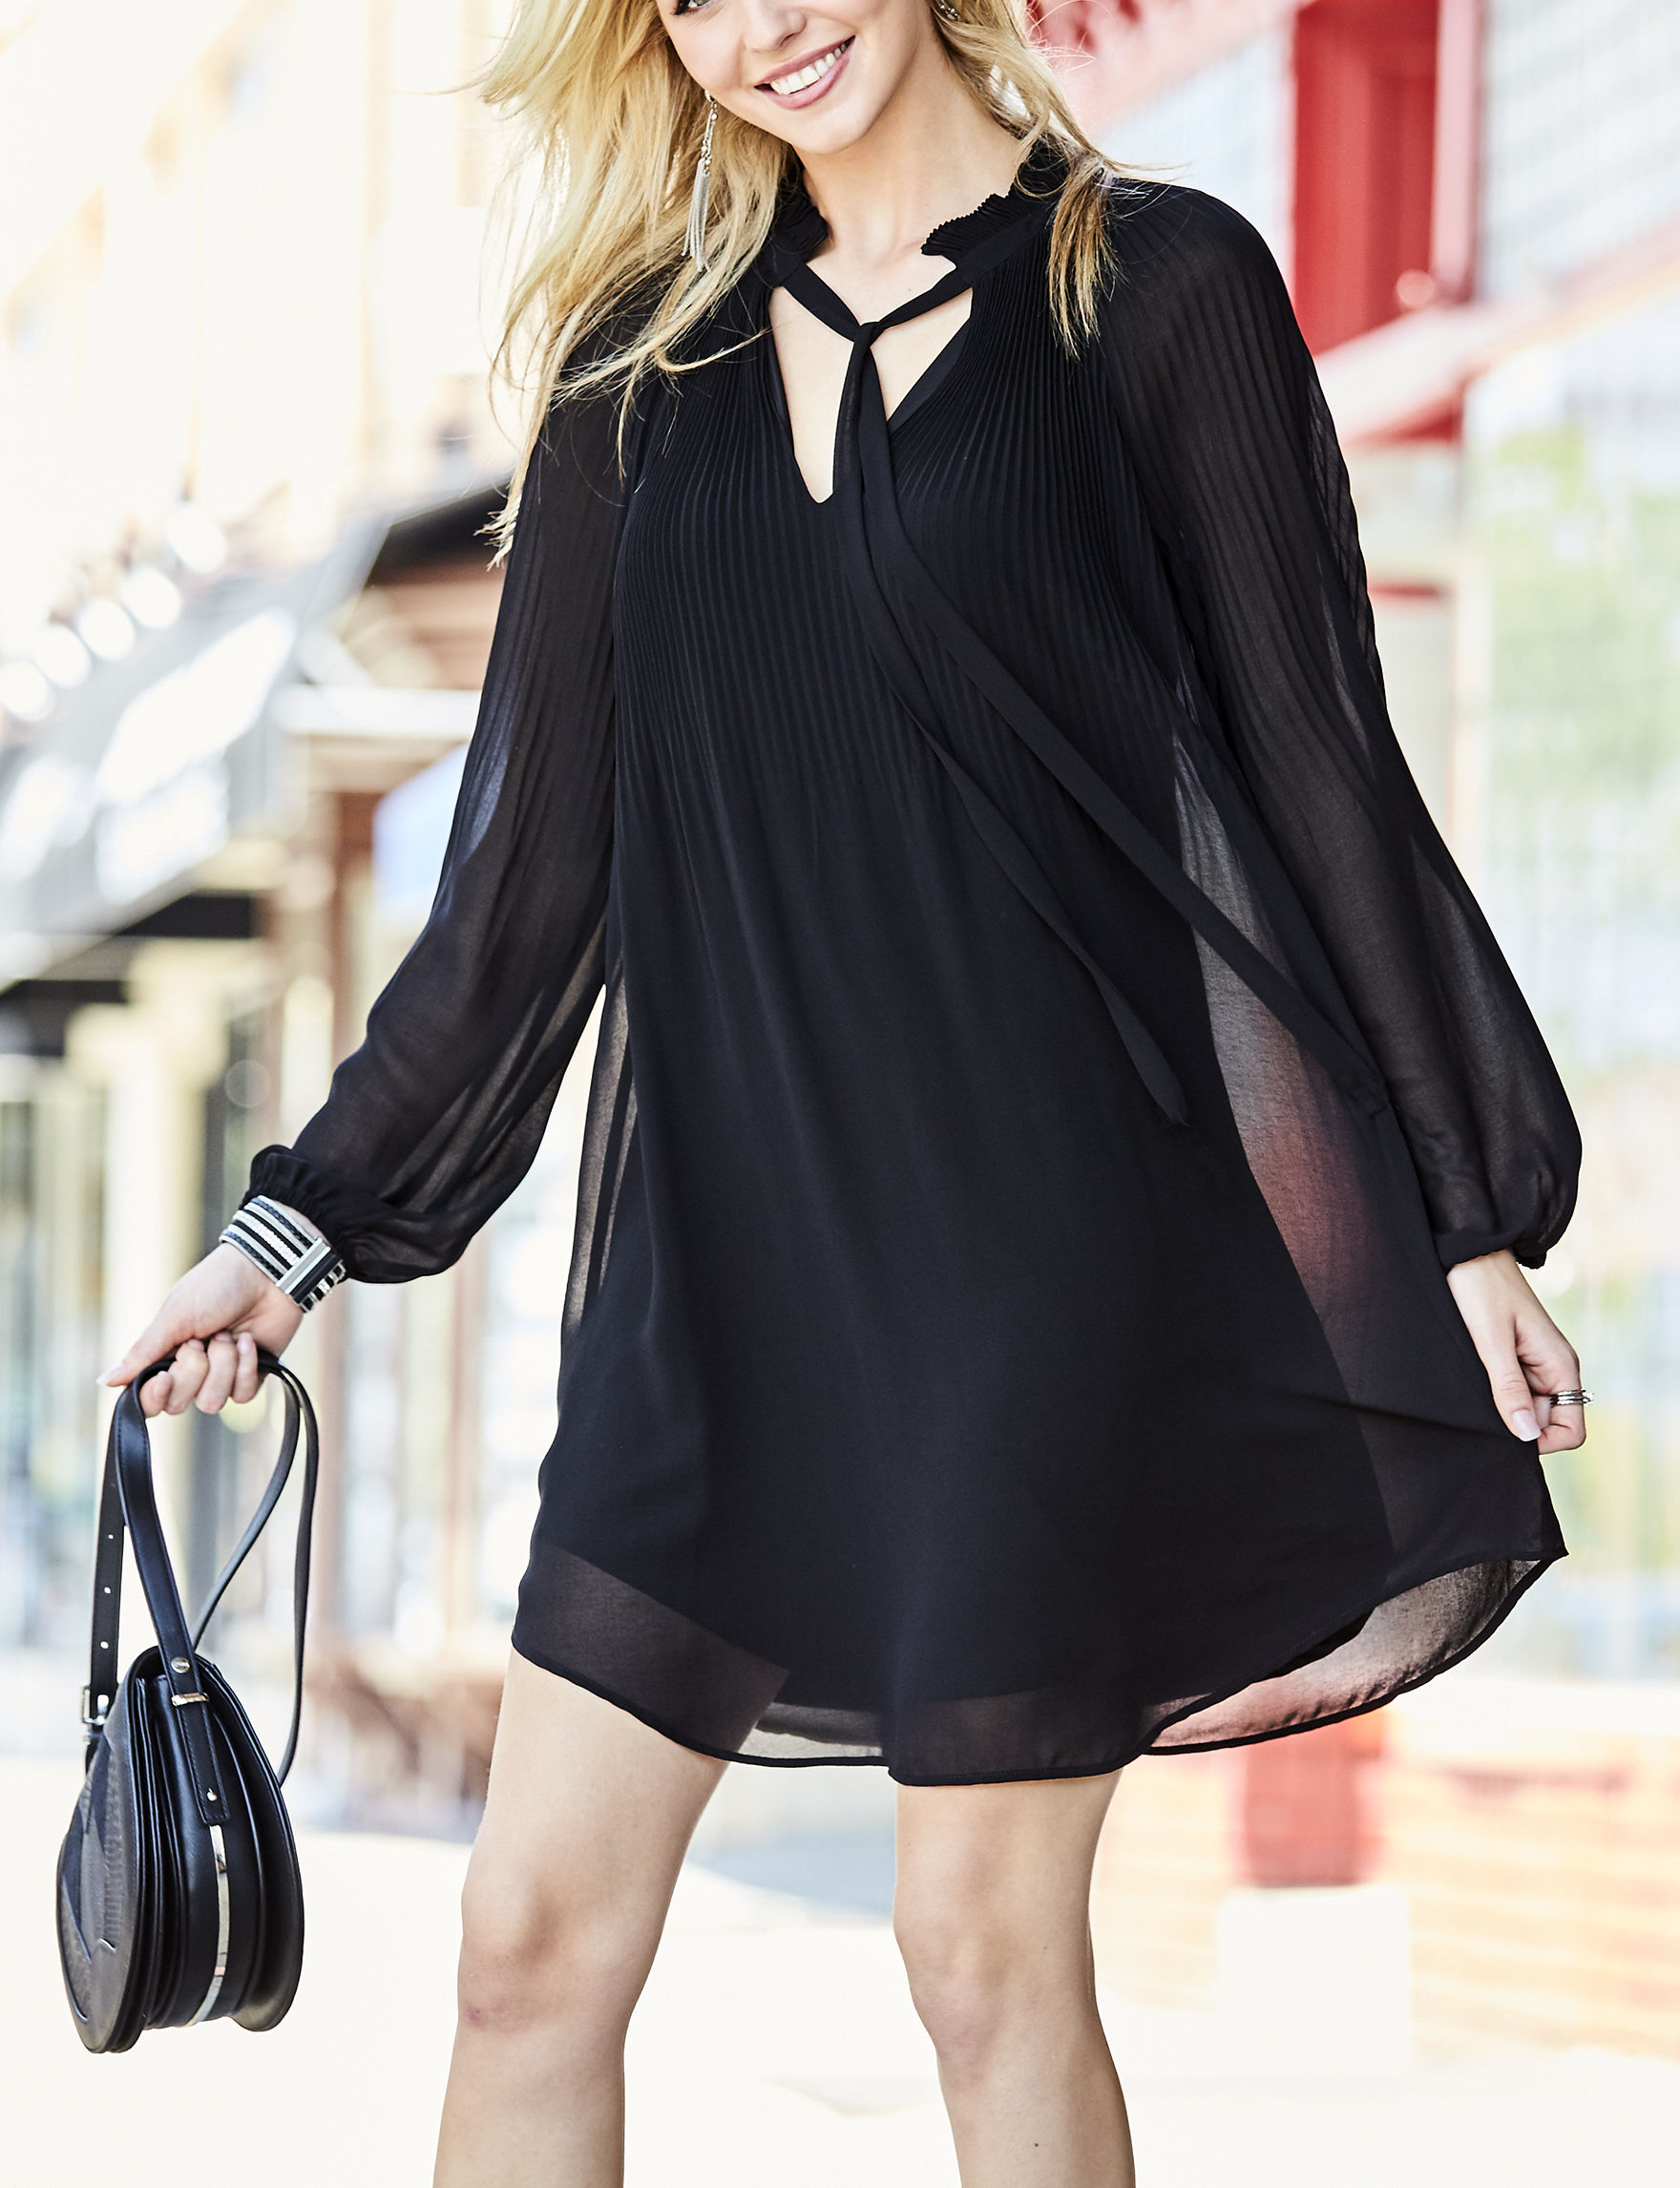 Signature Studio Black Shift Dresses